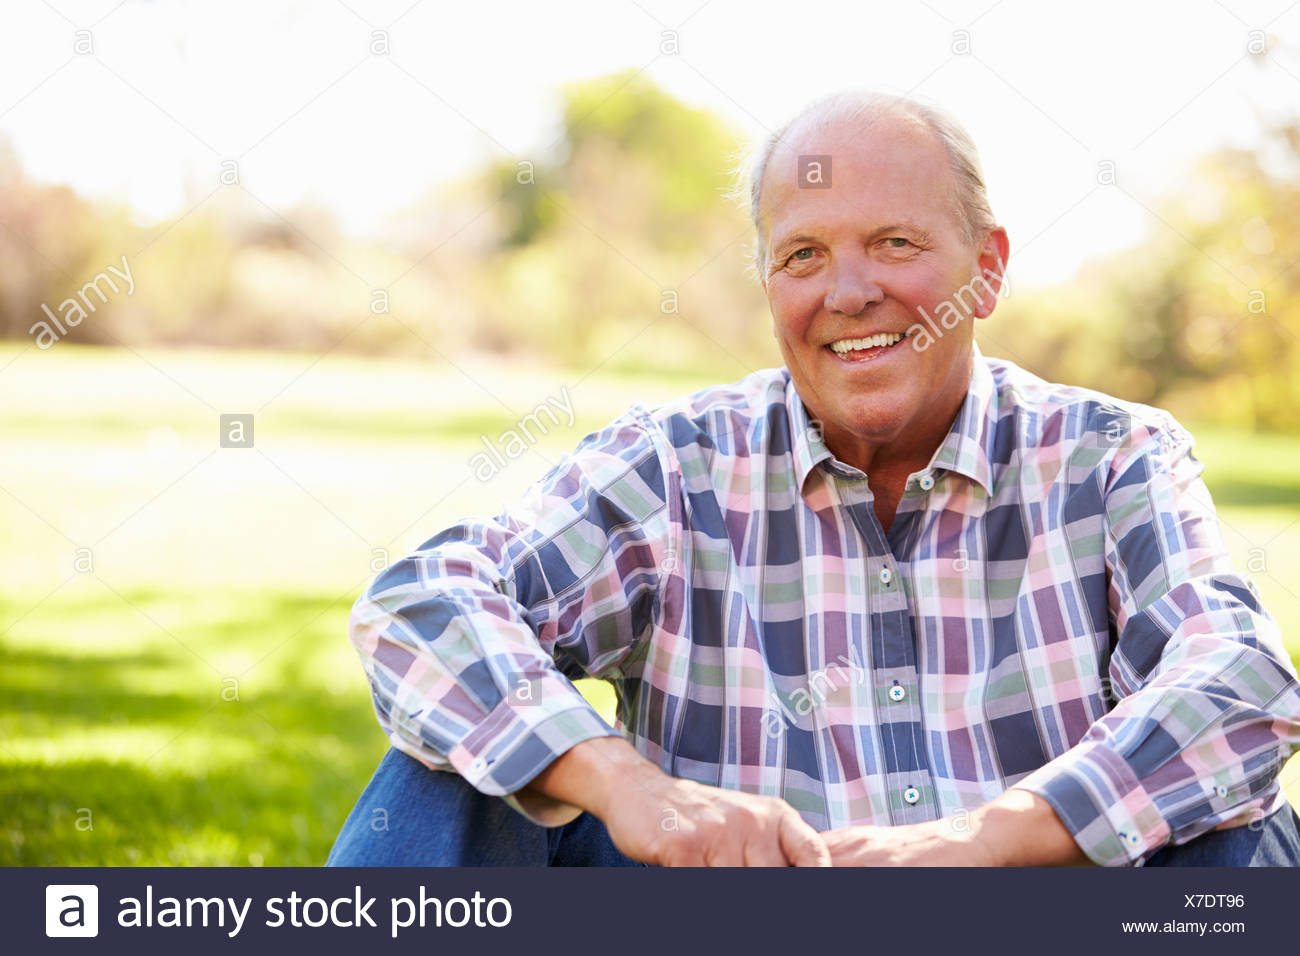 Senior Man Relaxing In Autumn Landscape - Stock Image